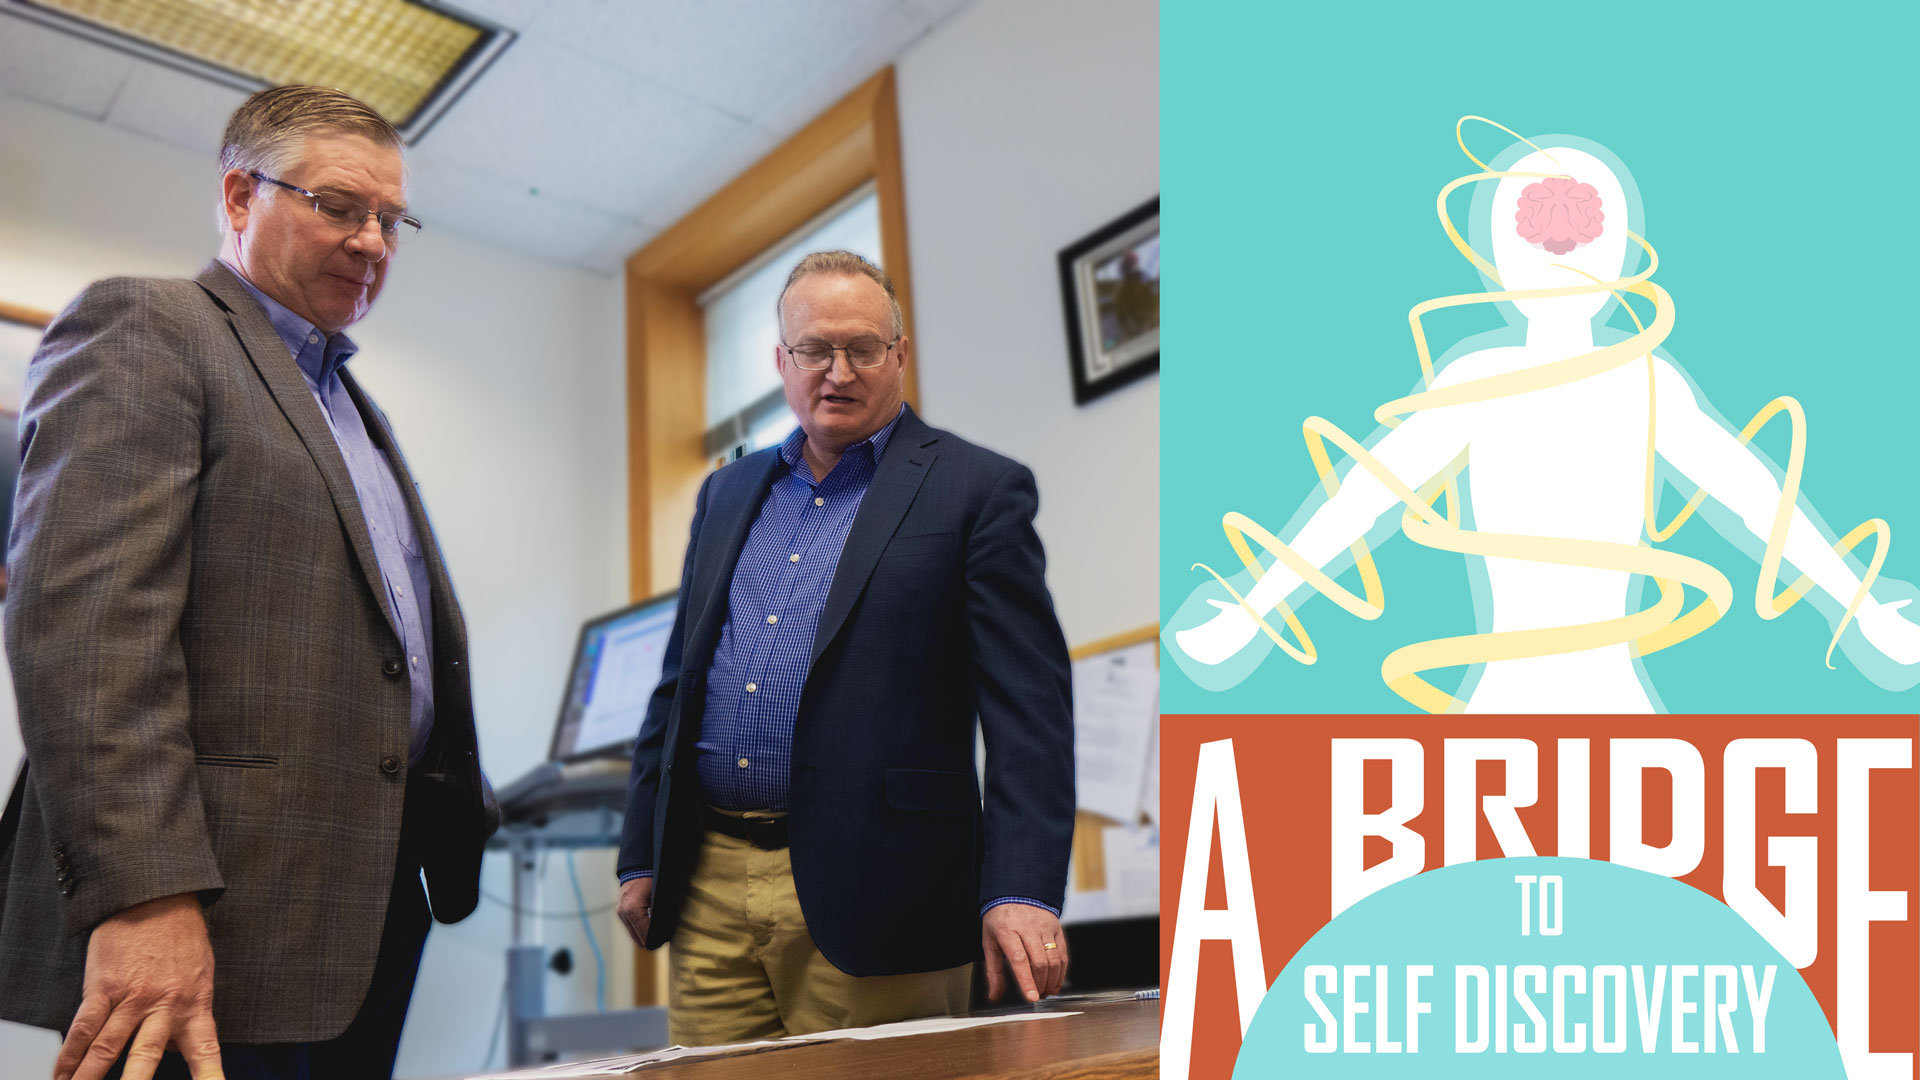 A Bridge To Self Discovery with Kevin Banks as Director house in the Social Work Deparment headed by Derrik Tolefson.